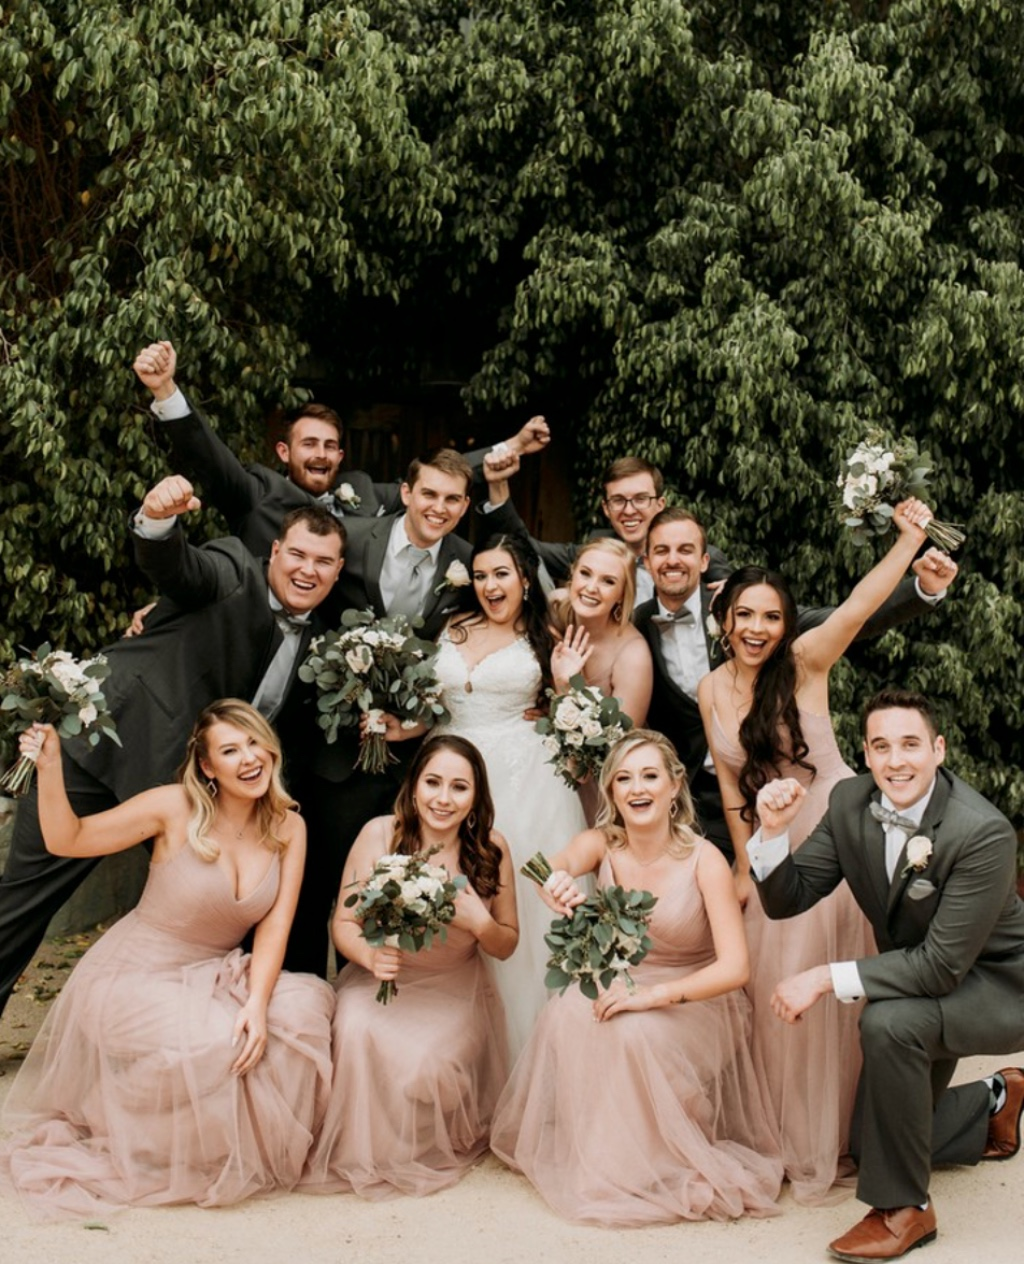 raise your hand if you never want the #weddingweekend to end 🙋‍ featuring the brielle #jycbrielle in cameo pink 💘 #jennyyoobridesmaids